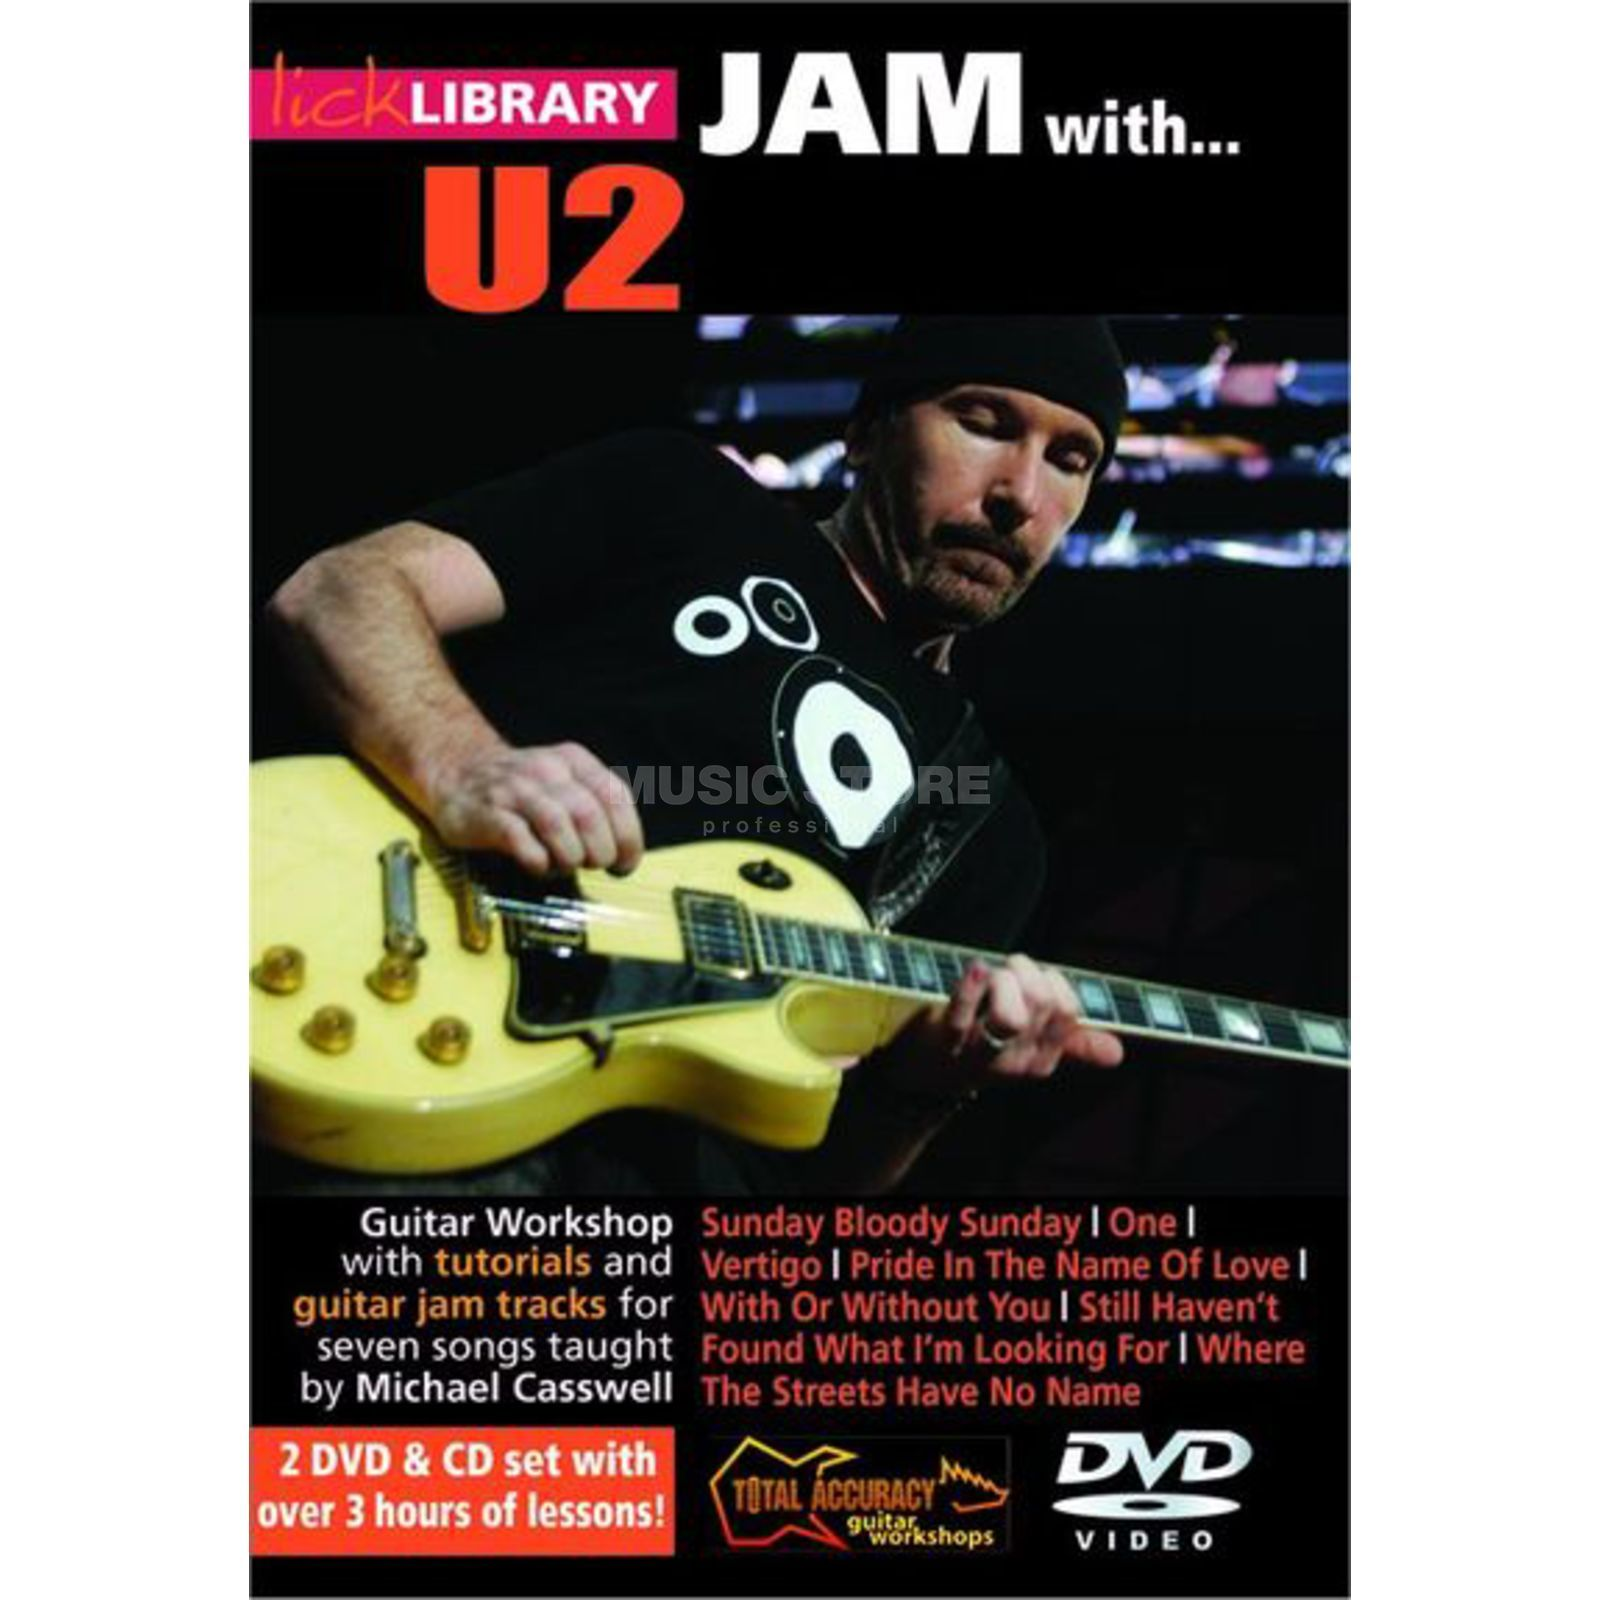 Roadrock International Lick Library: Jam With U2 DVD, CD Product Image